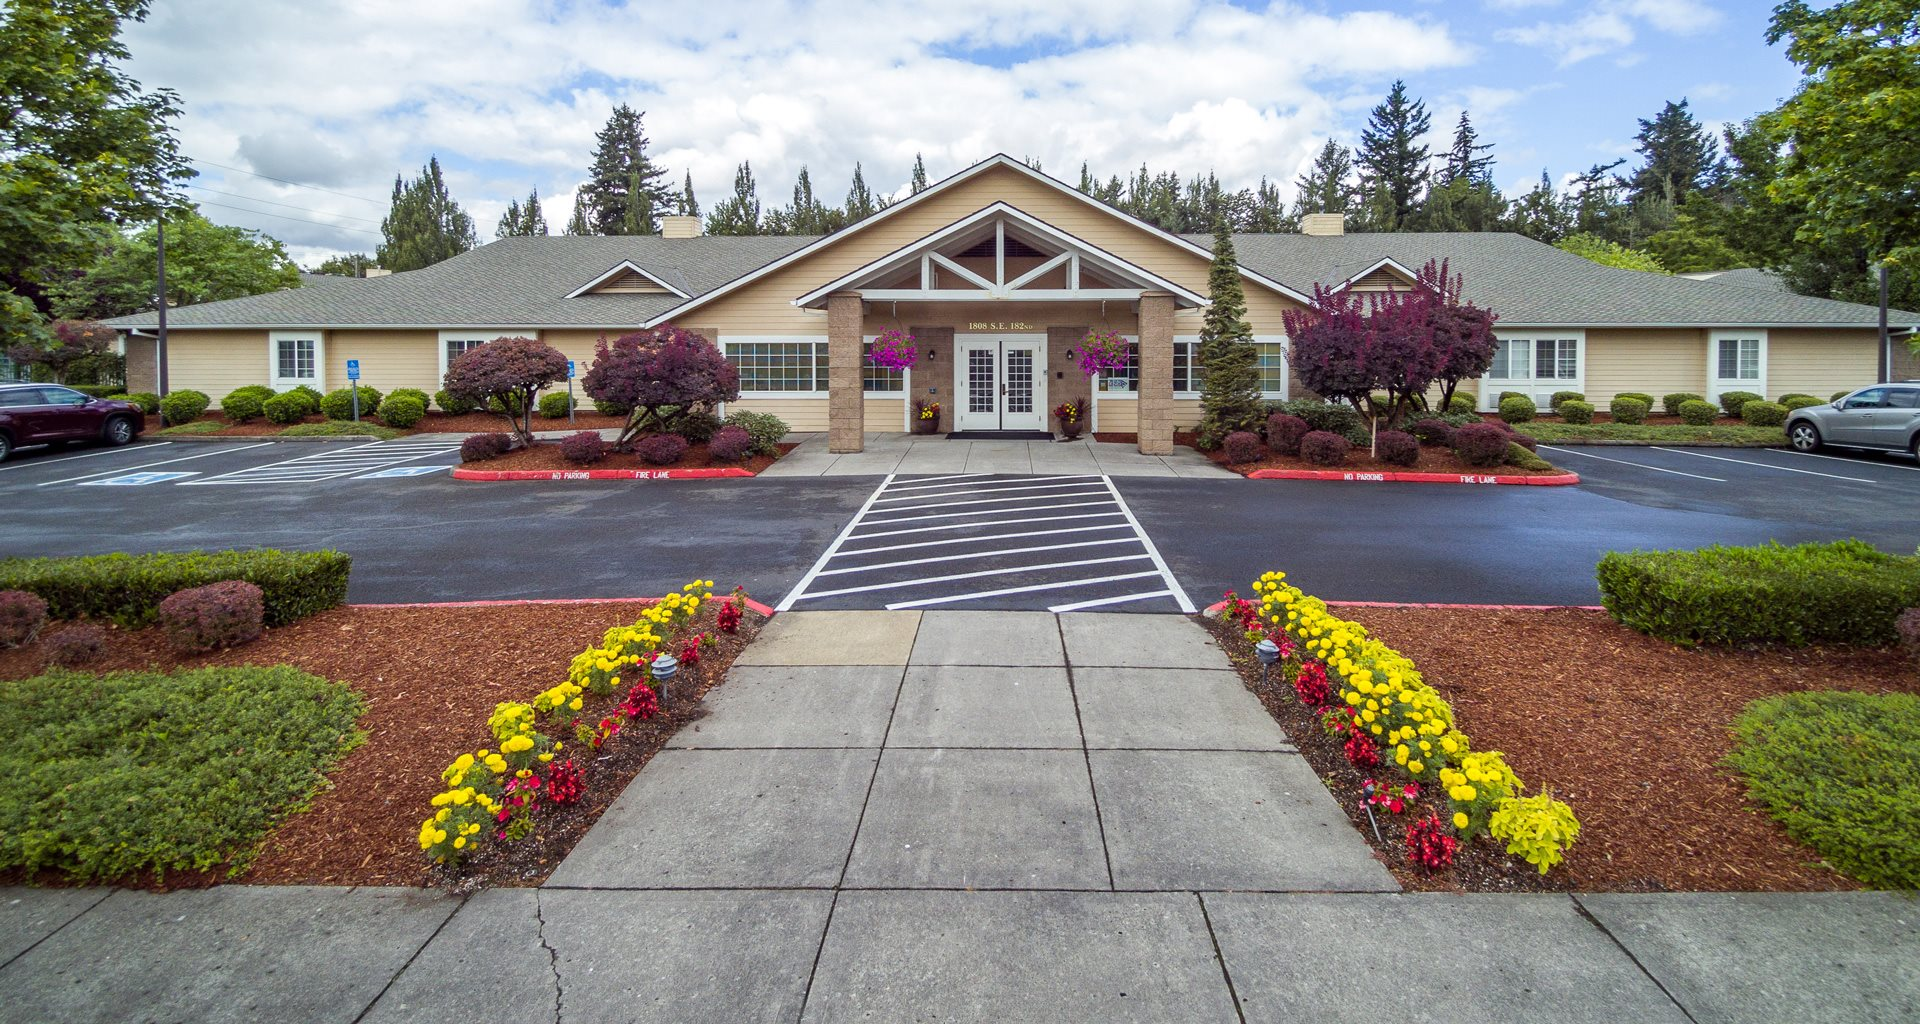 Senior community full of love at Pacifica Senior Living Portland, Portland, Oregon